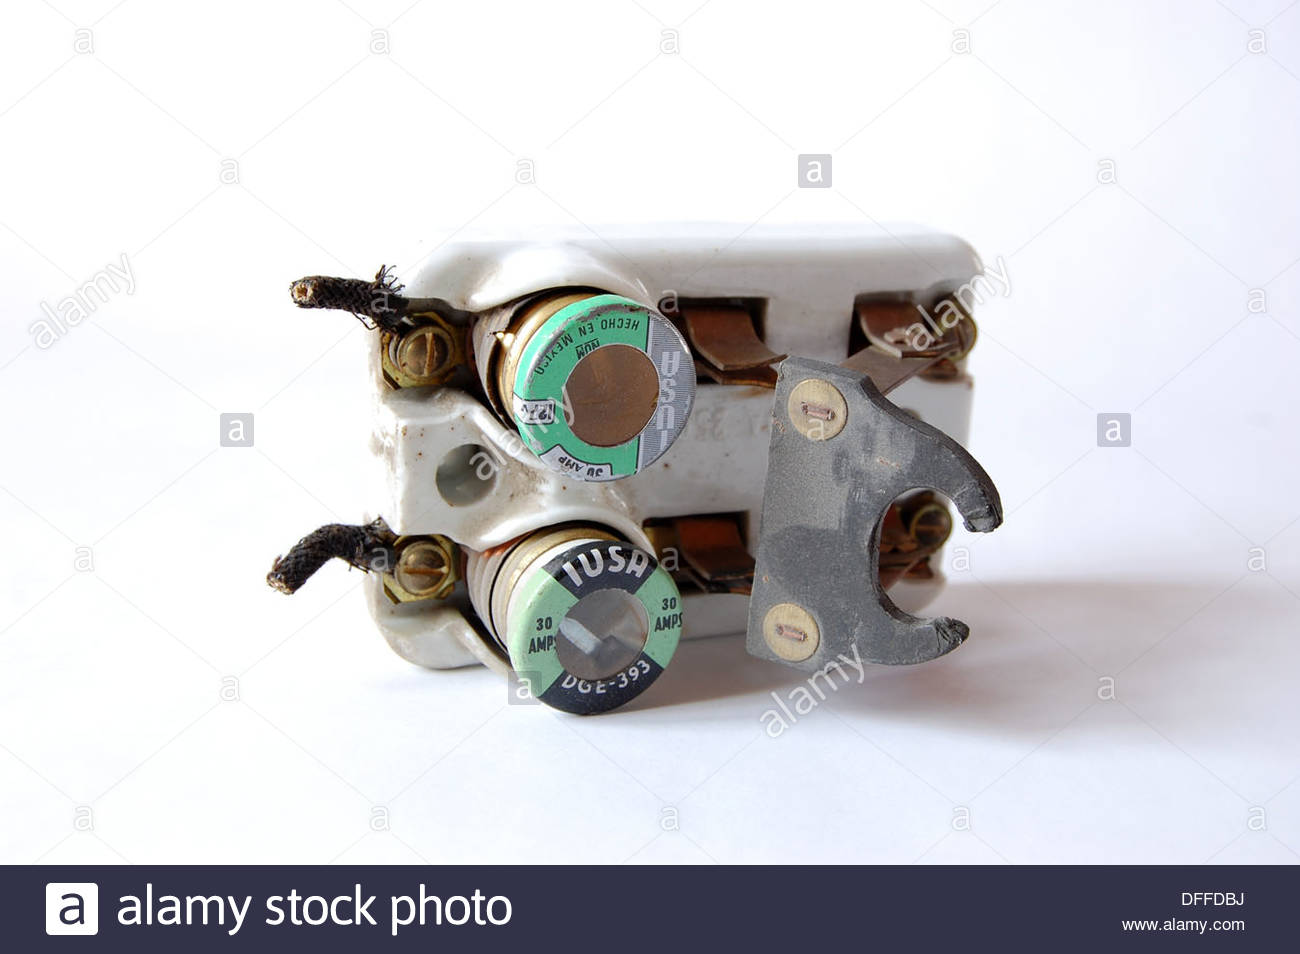 1950s vintage ceramic fuse box electrical circuit breaker with fuses ceramic fuse blocks 1950s vintage ceramic fuse box electrical circuit breaker with fuses and knife switch plain background natural light closeup